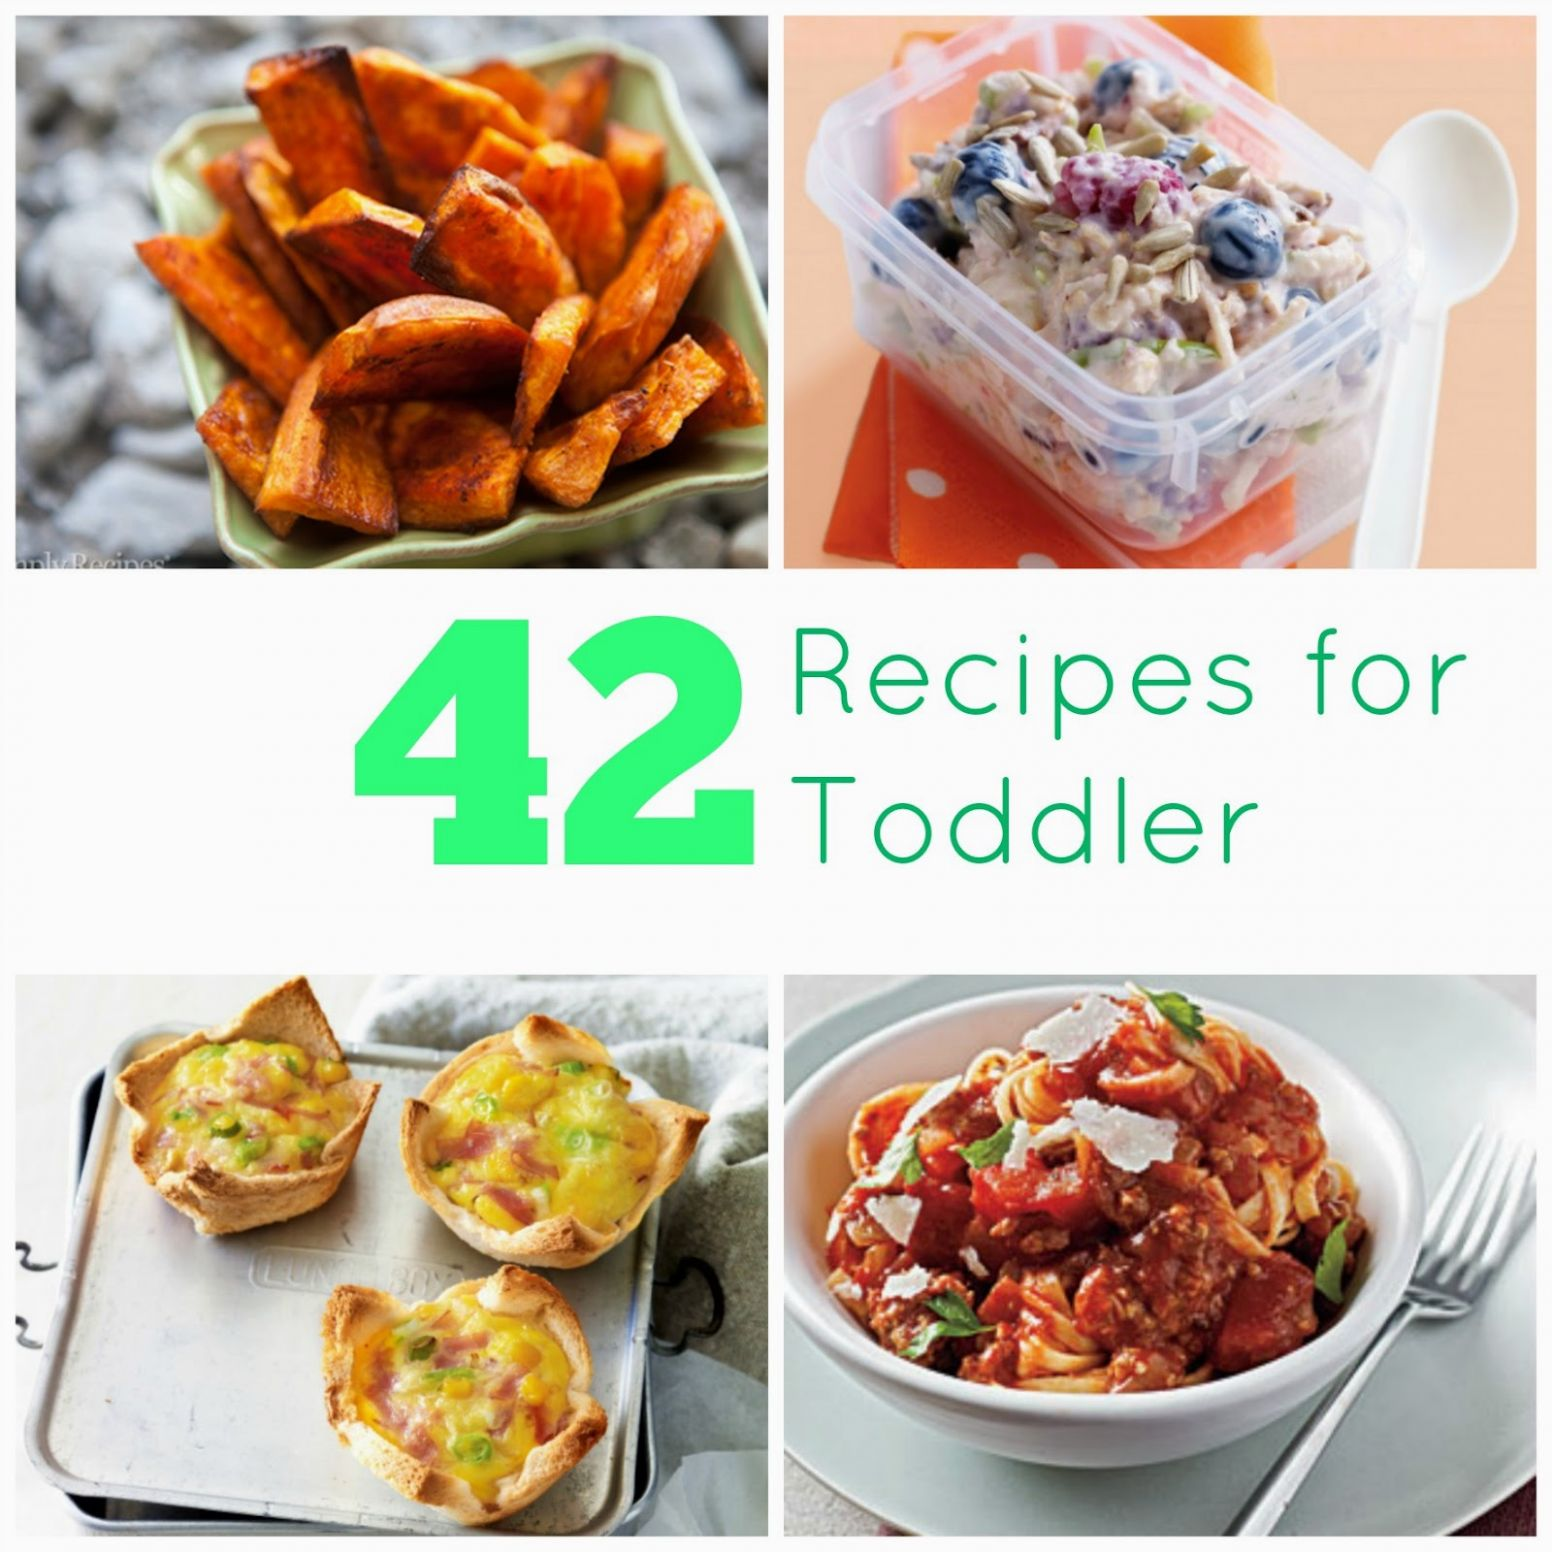 8 Healthy Recipes For Toddlers | Most Popular Mom Blogs |  ..